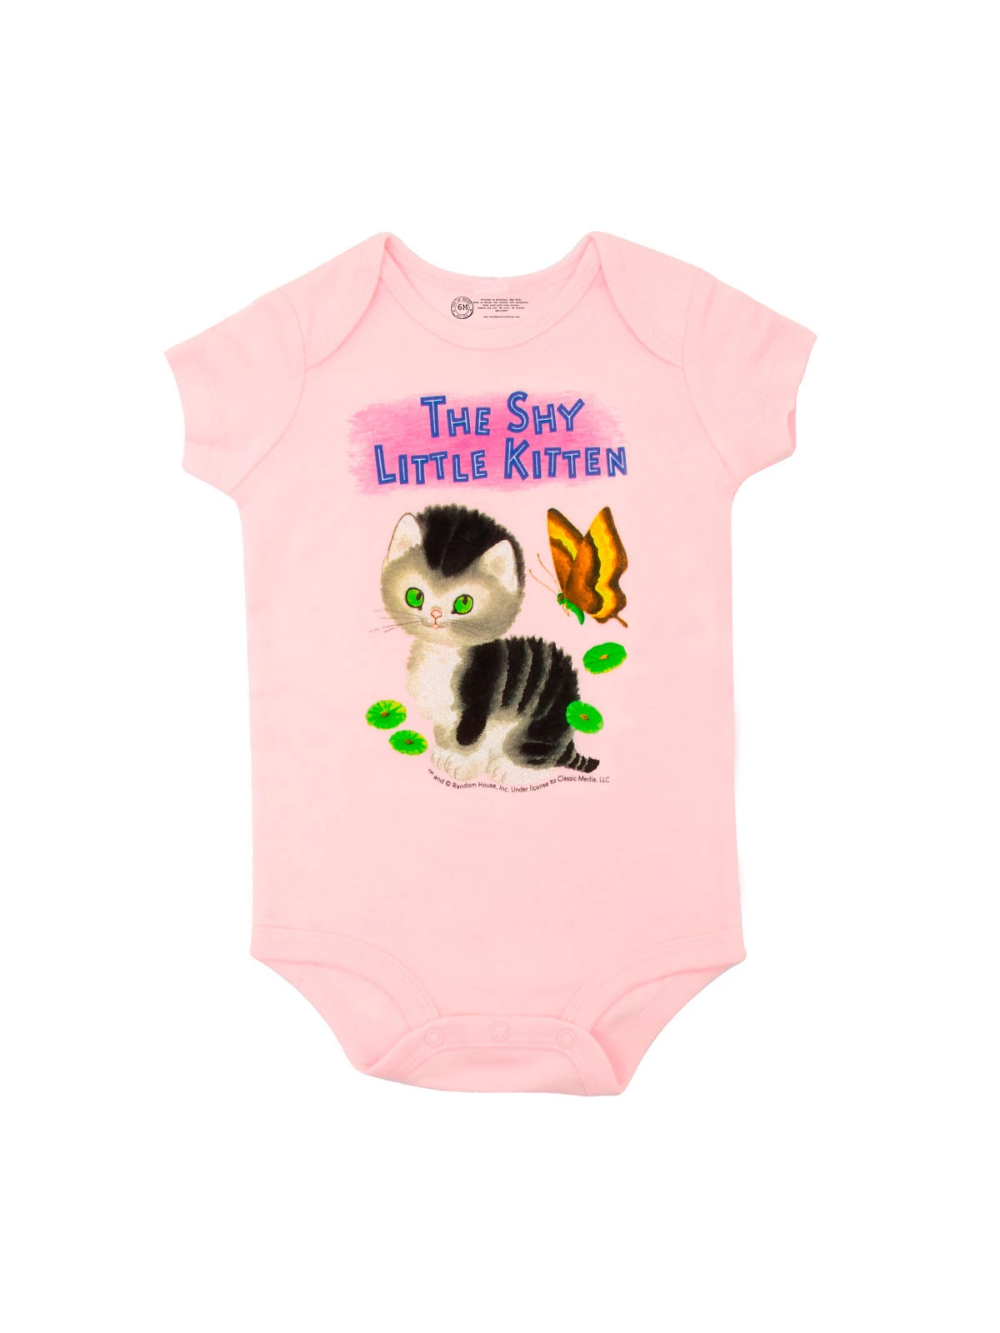 Baby The Shy Little Kitten Bodysuit Little Kittens Toddler Themes Baby Kittens